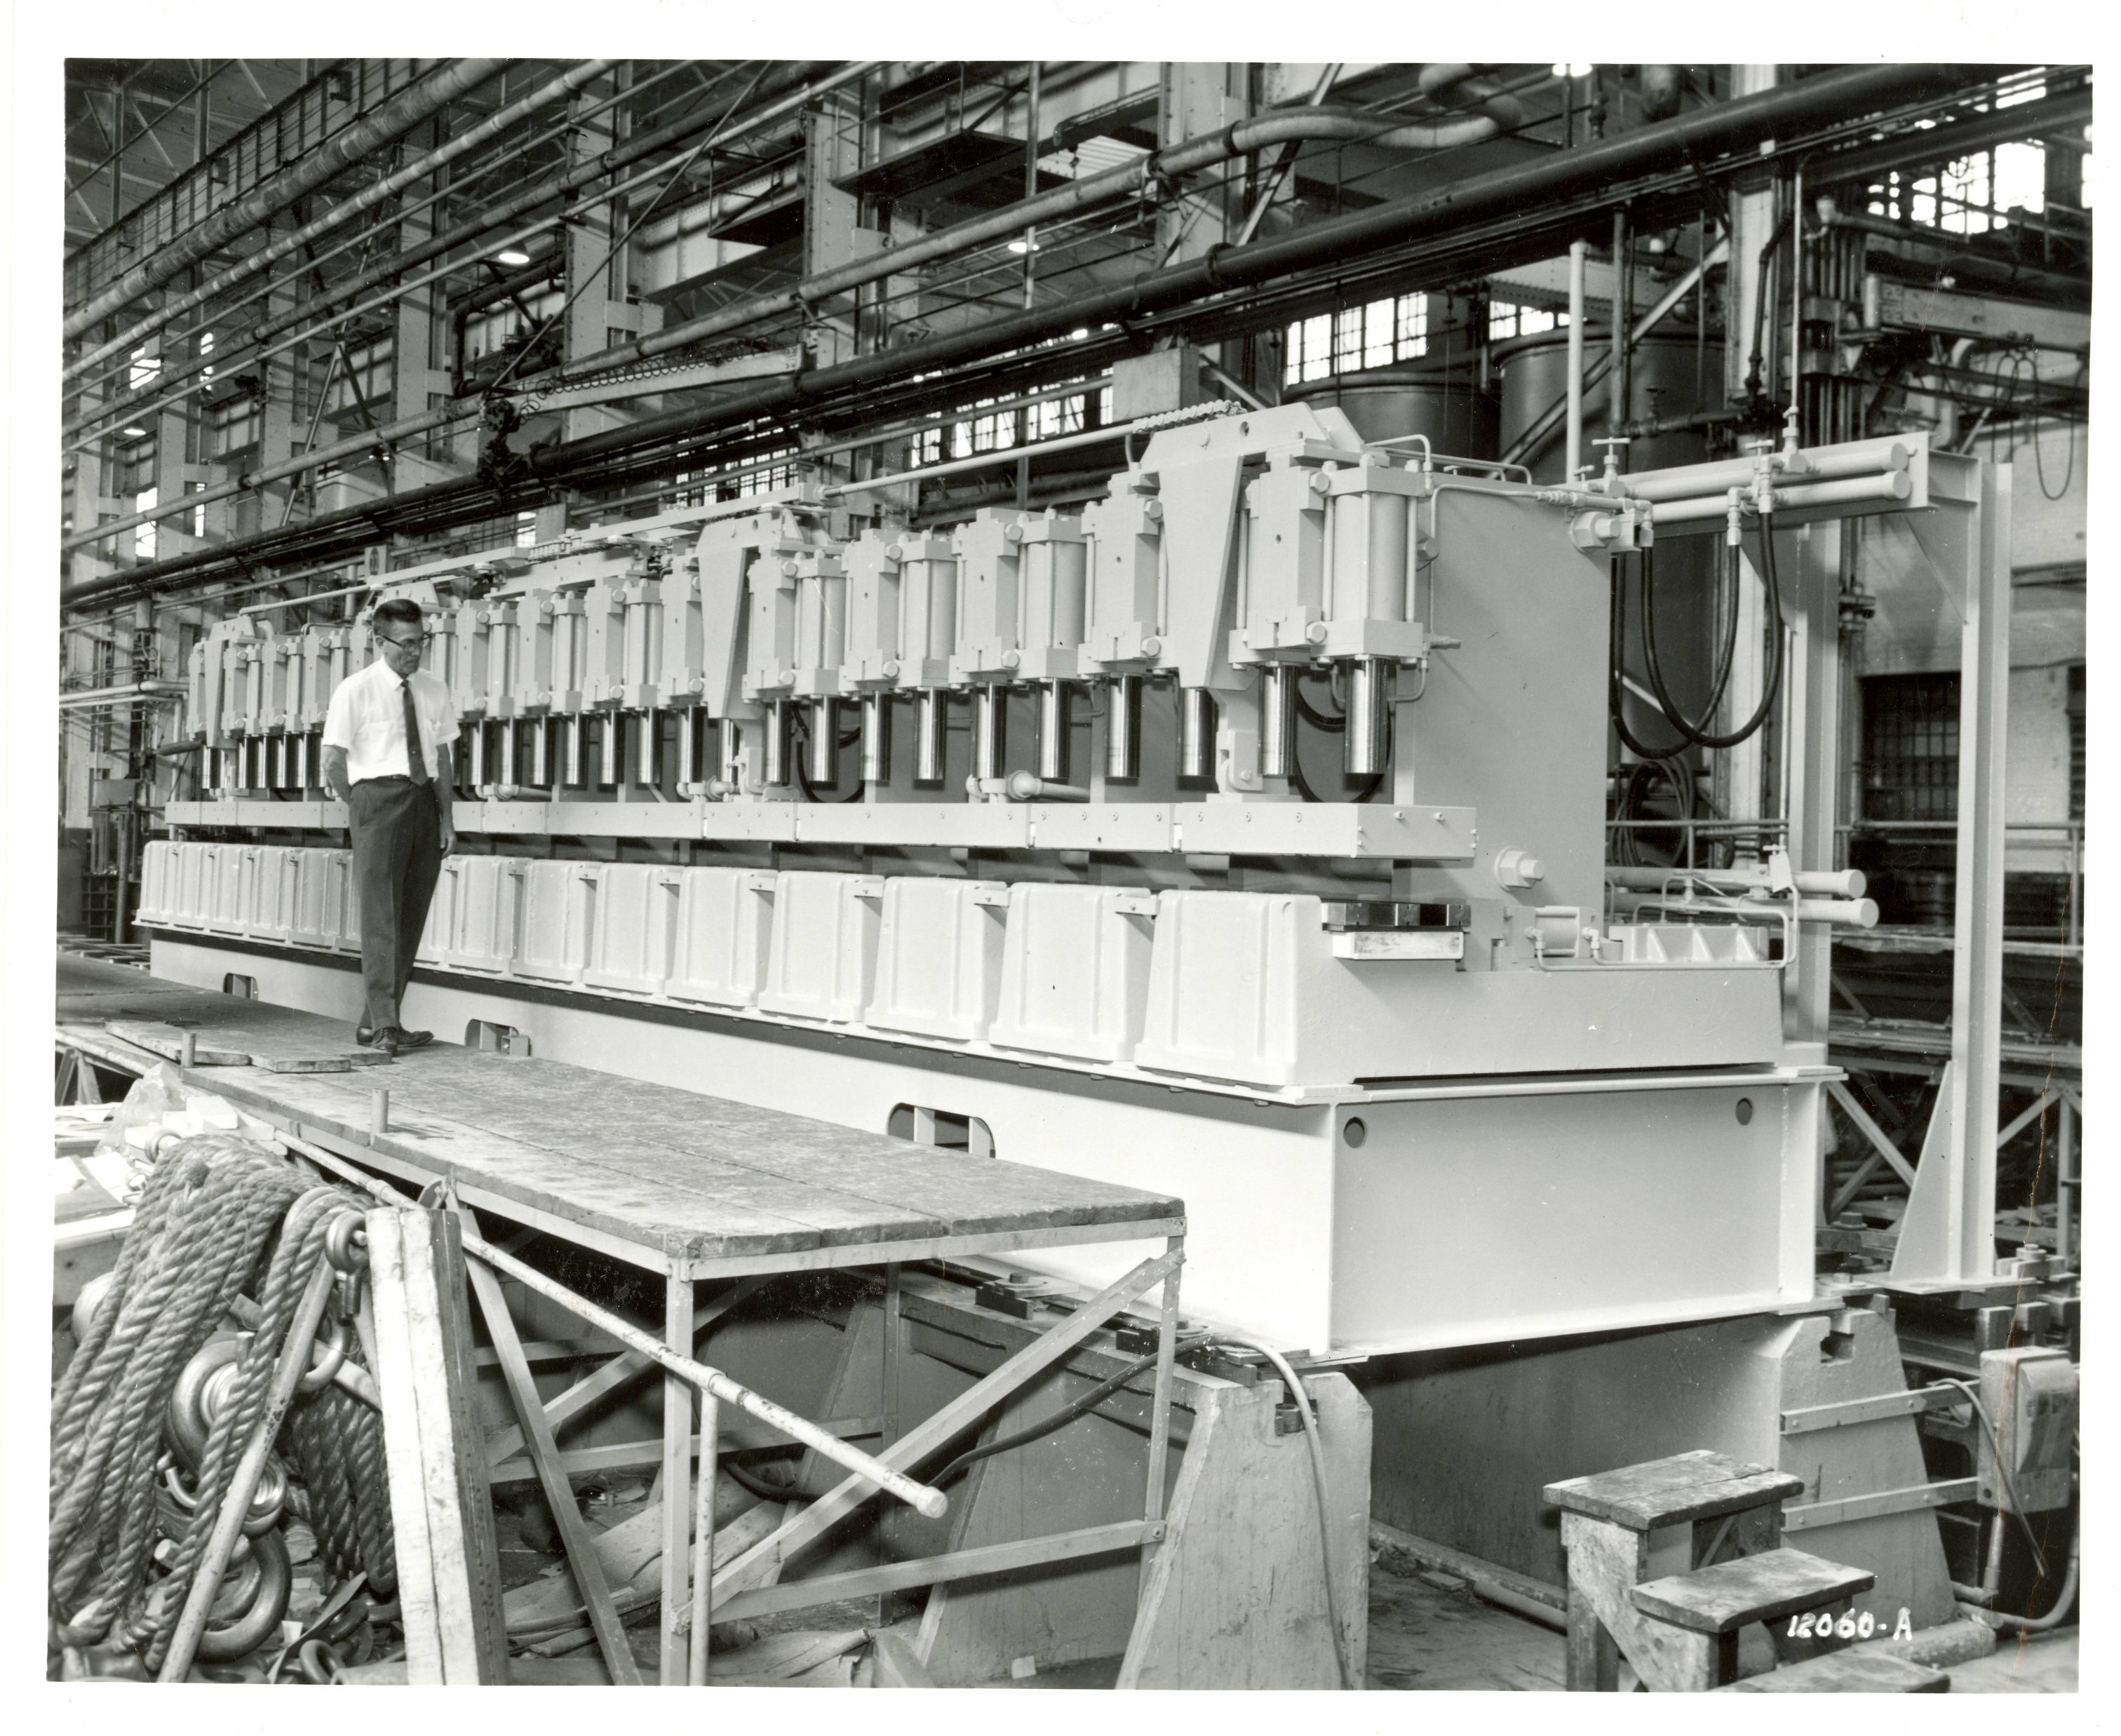 A man stands on scaffolding next to a large molding press at the Nordberg Manufacturing Company.